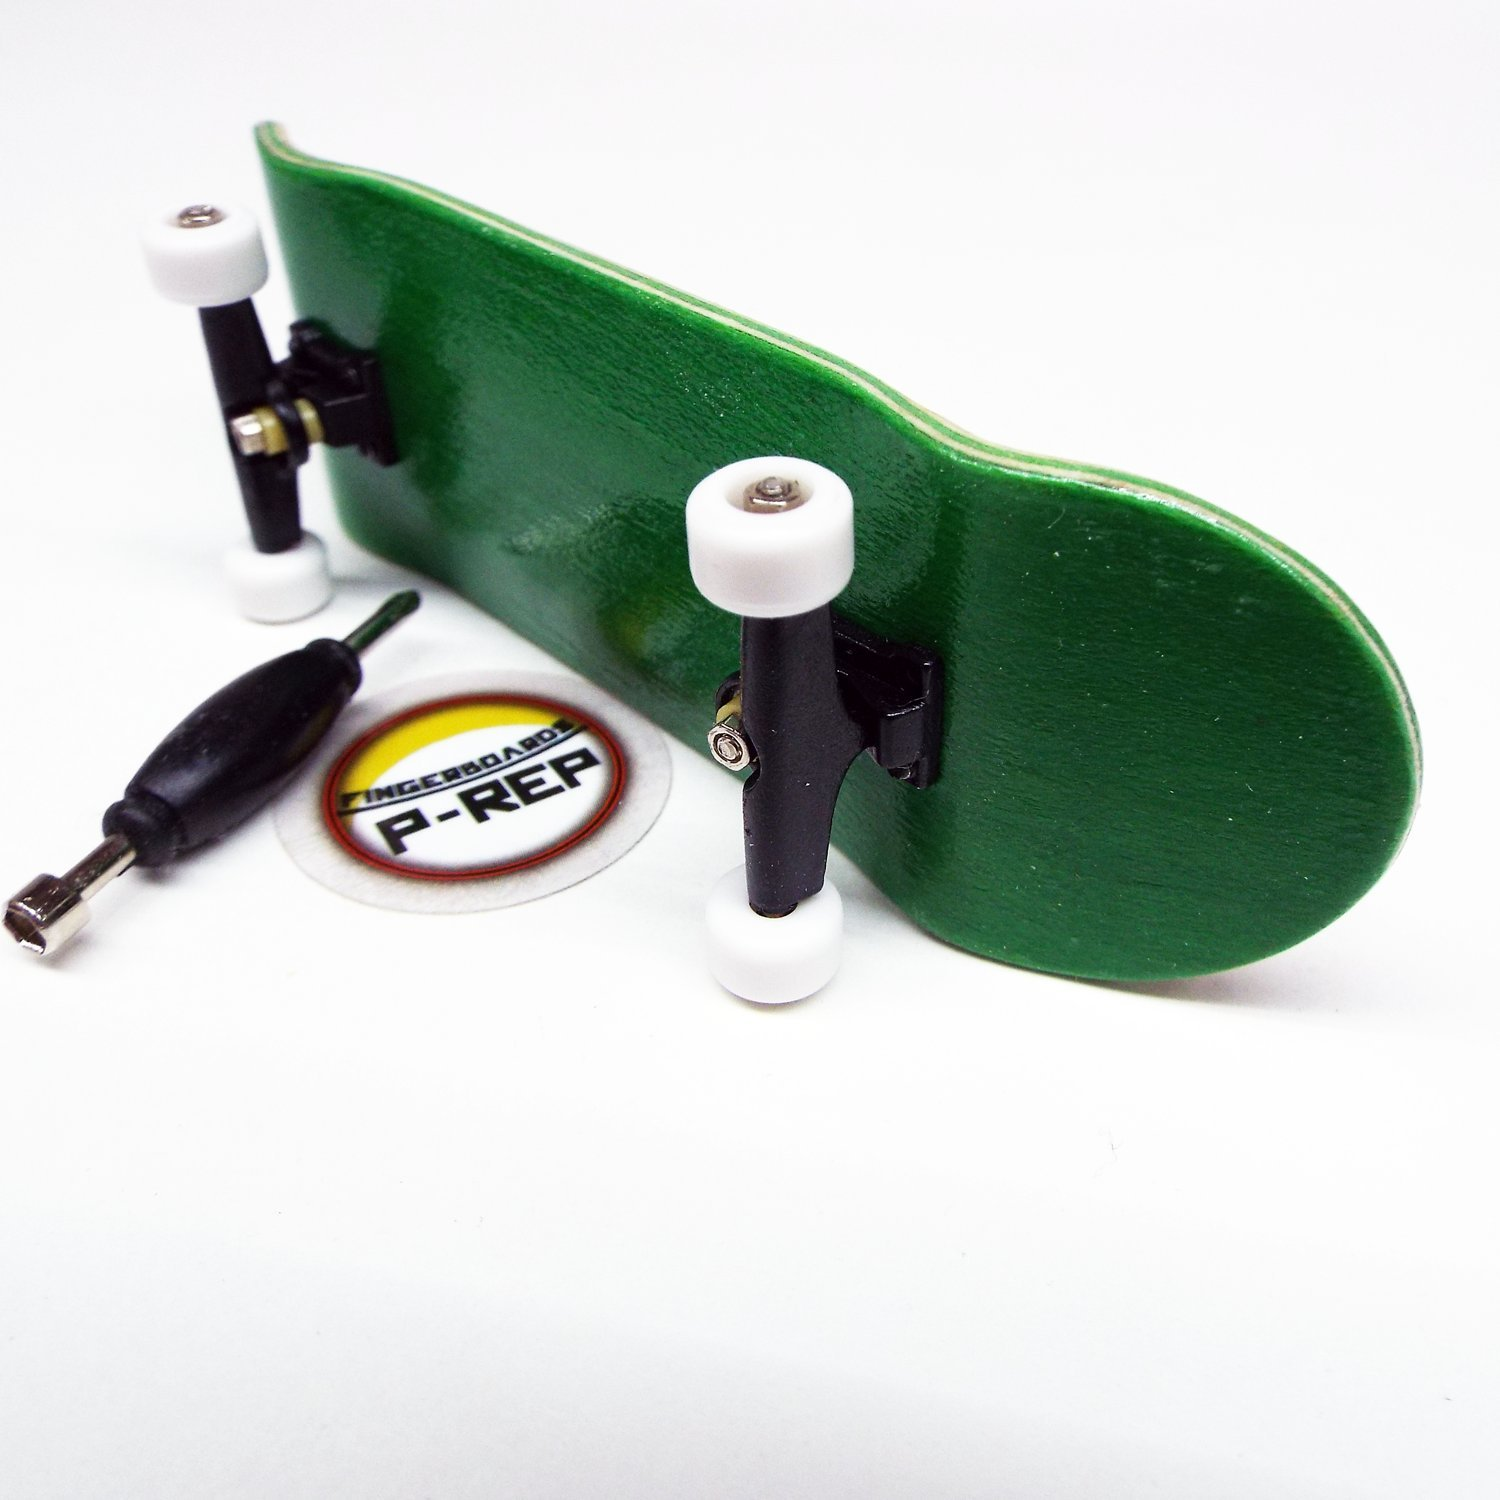 Peoples Republic Green Complete Wooden Fingerboard with Basic Bearing Wheels - Starter Edition